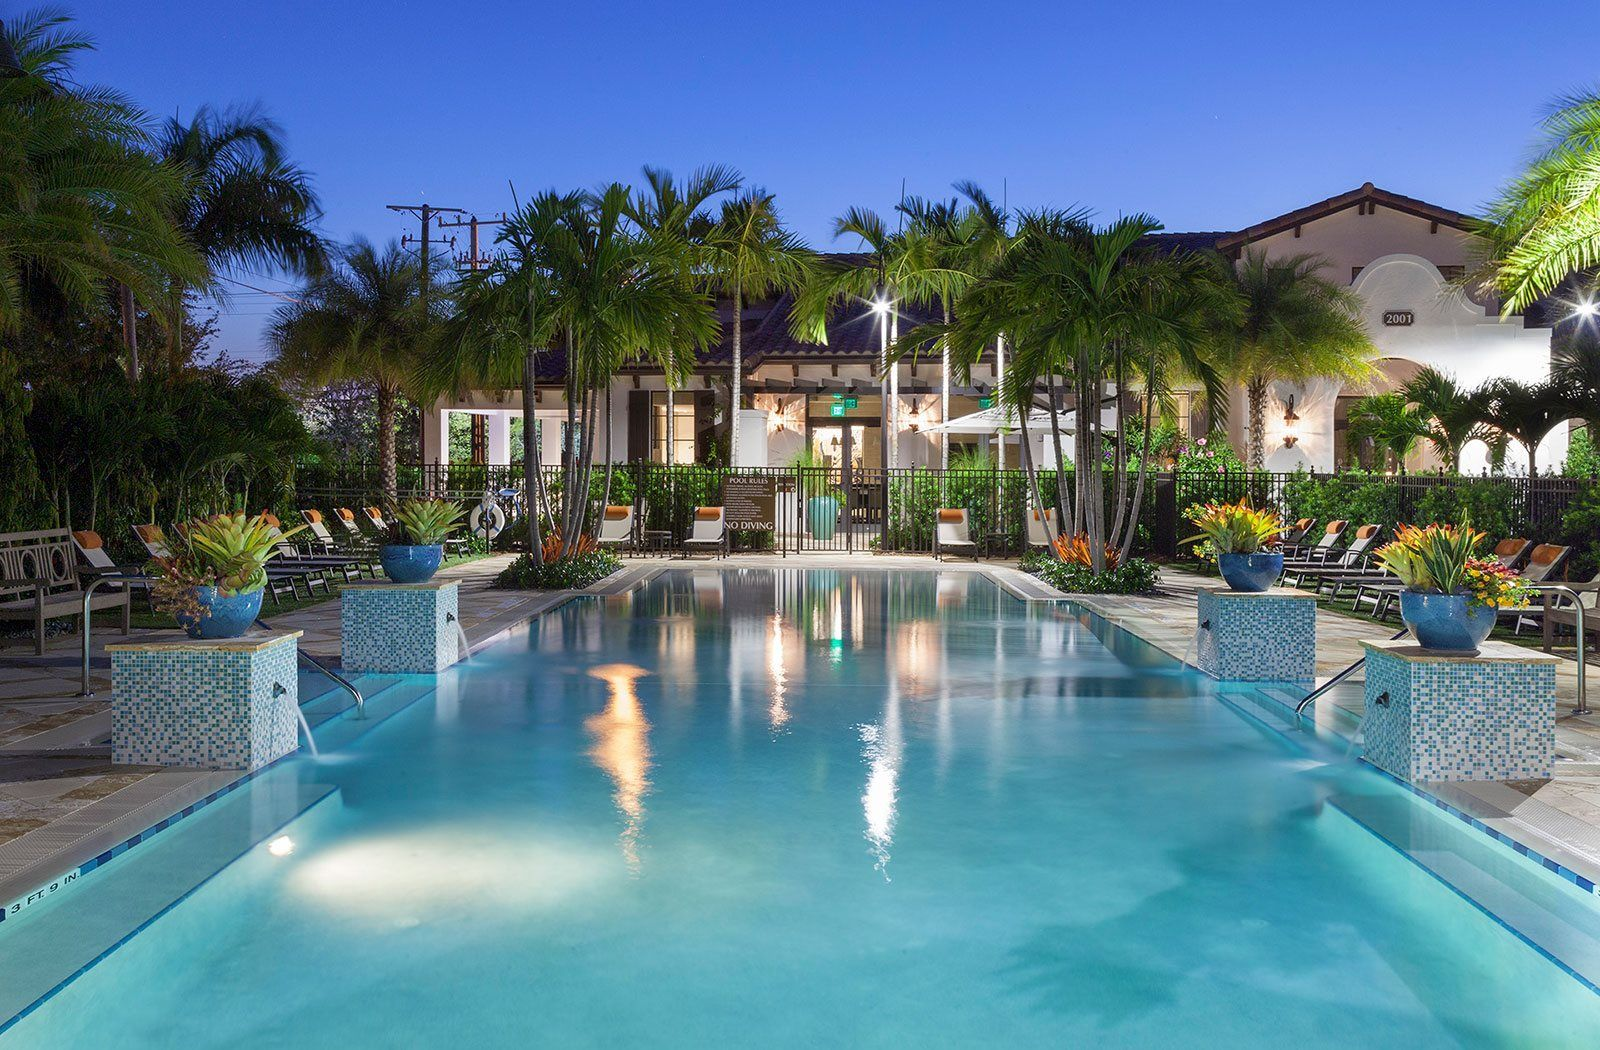 Resort Style Pool Luxury Apartment Homes In Delray Beach Florida In 2020 Delray Beach Hotels Beach Apartment Oceanfront Condo